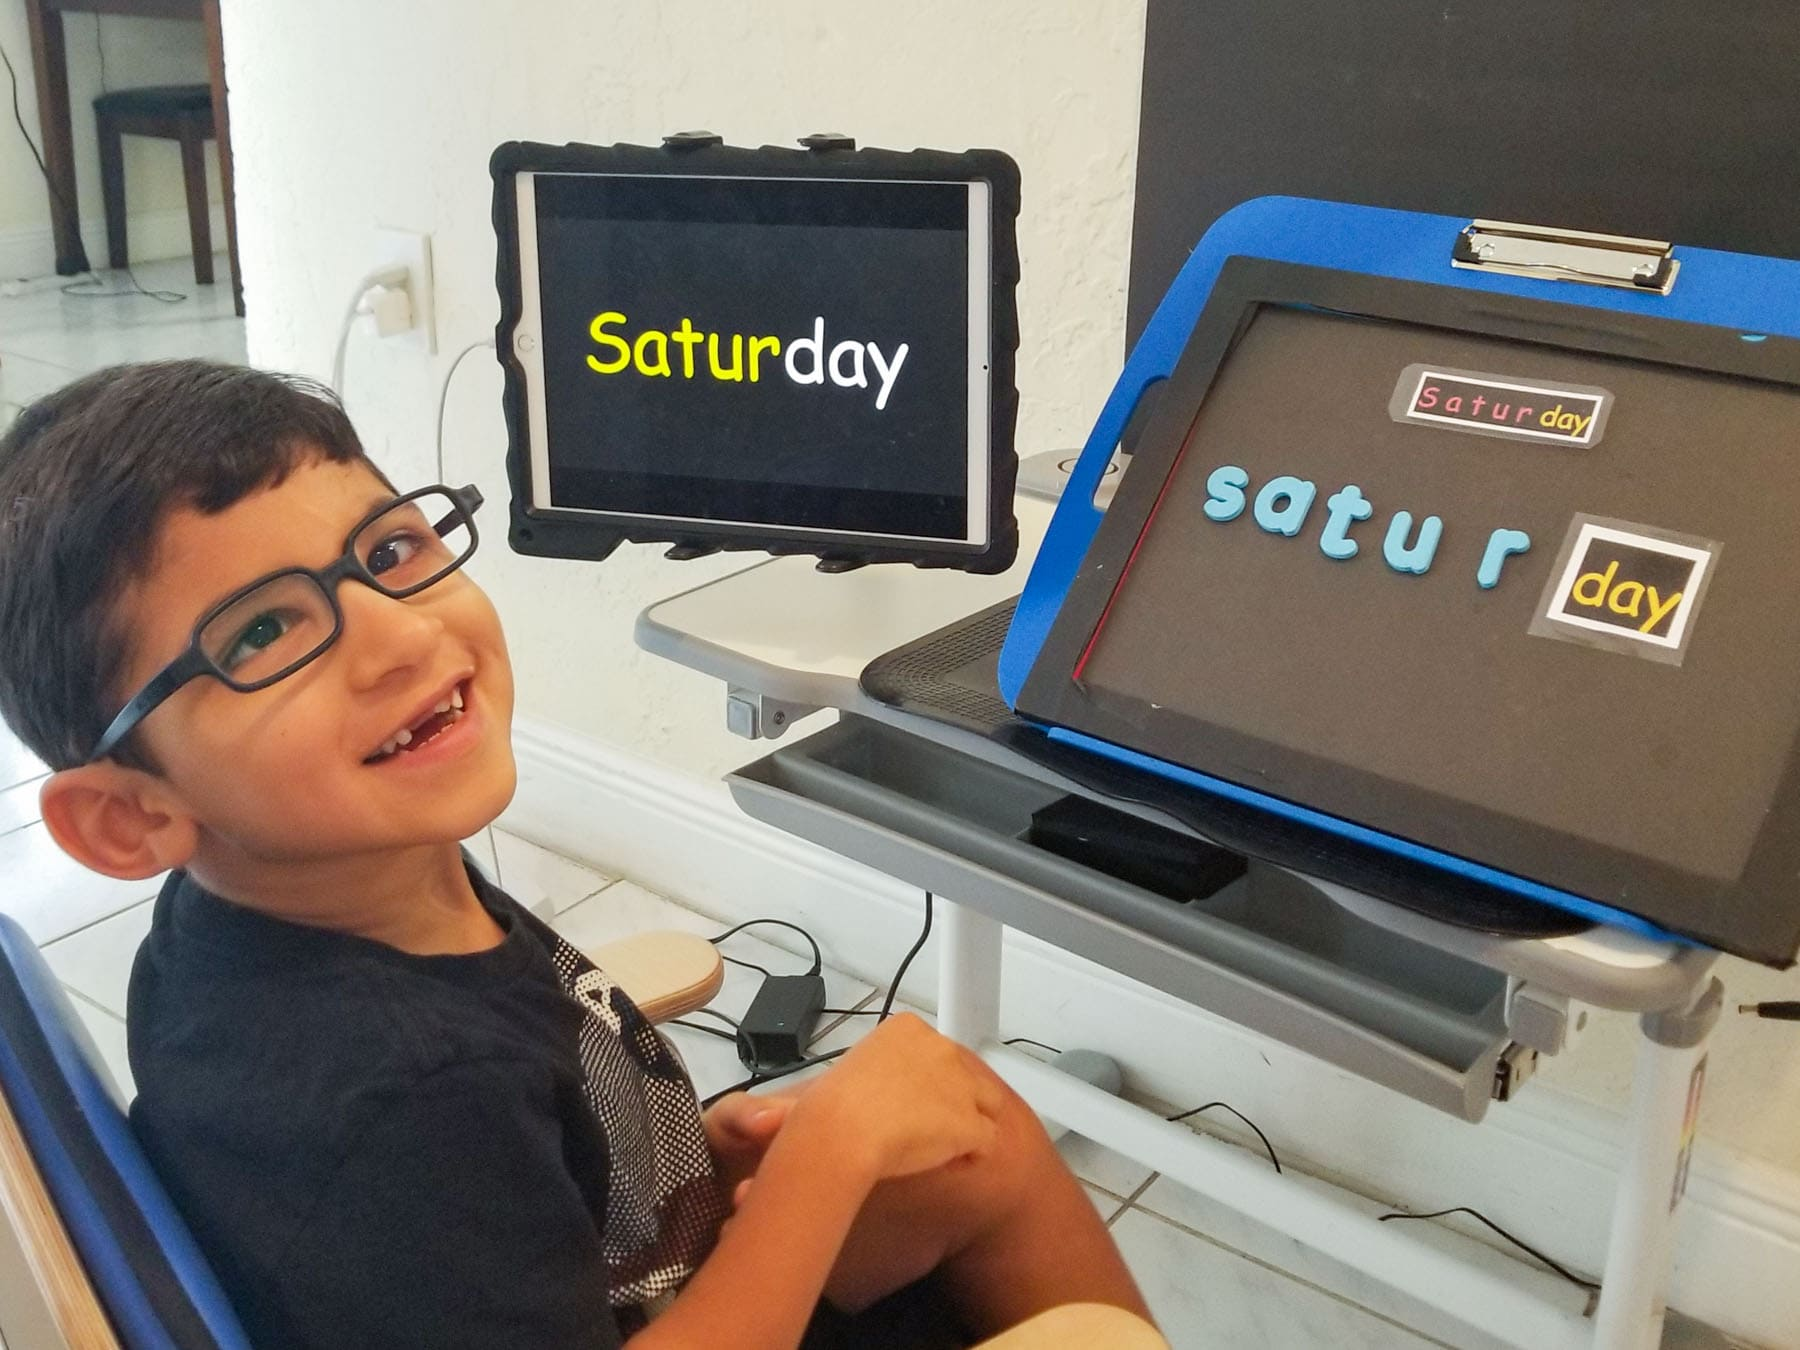 A young boy learning how to spell on an Ipad at a desk